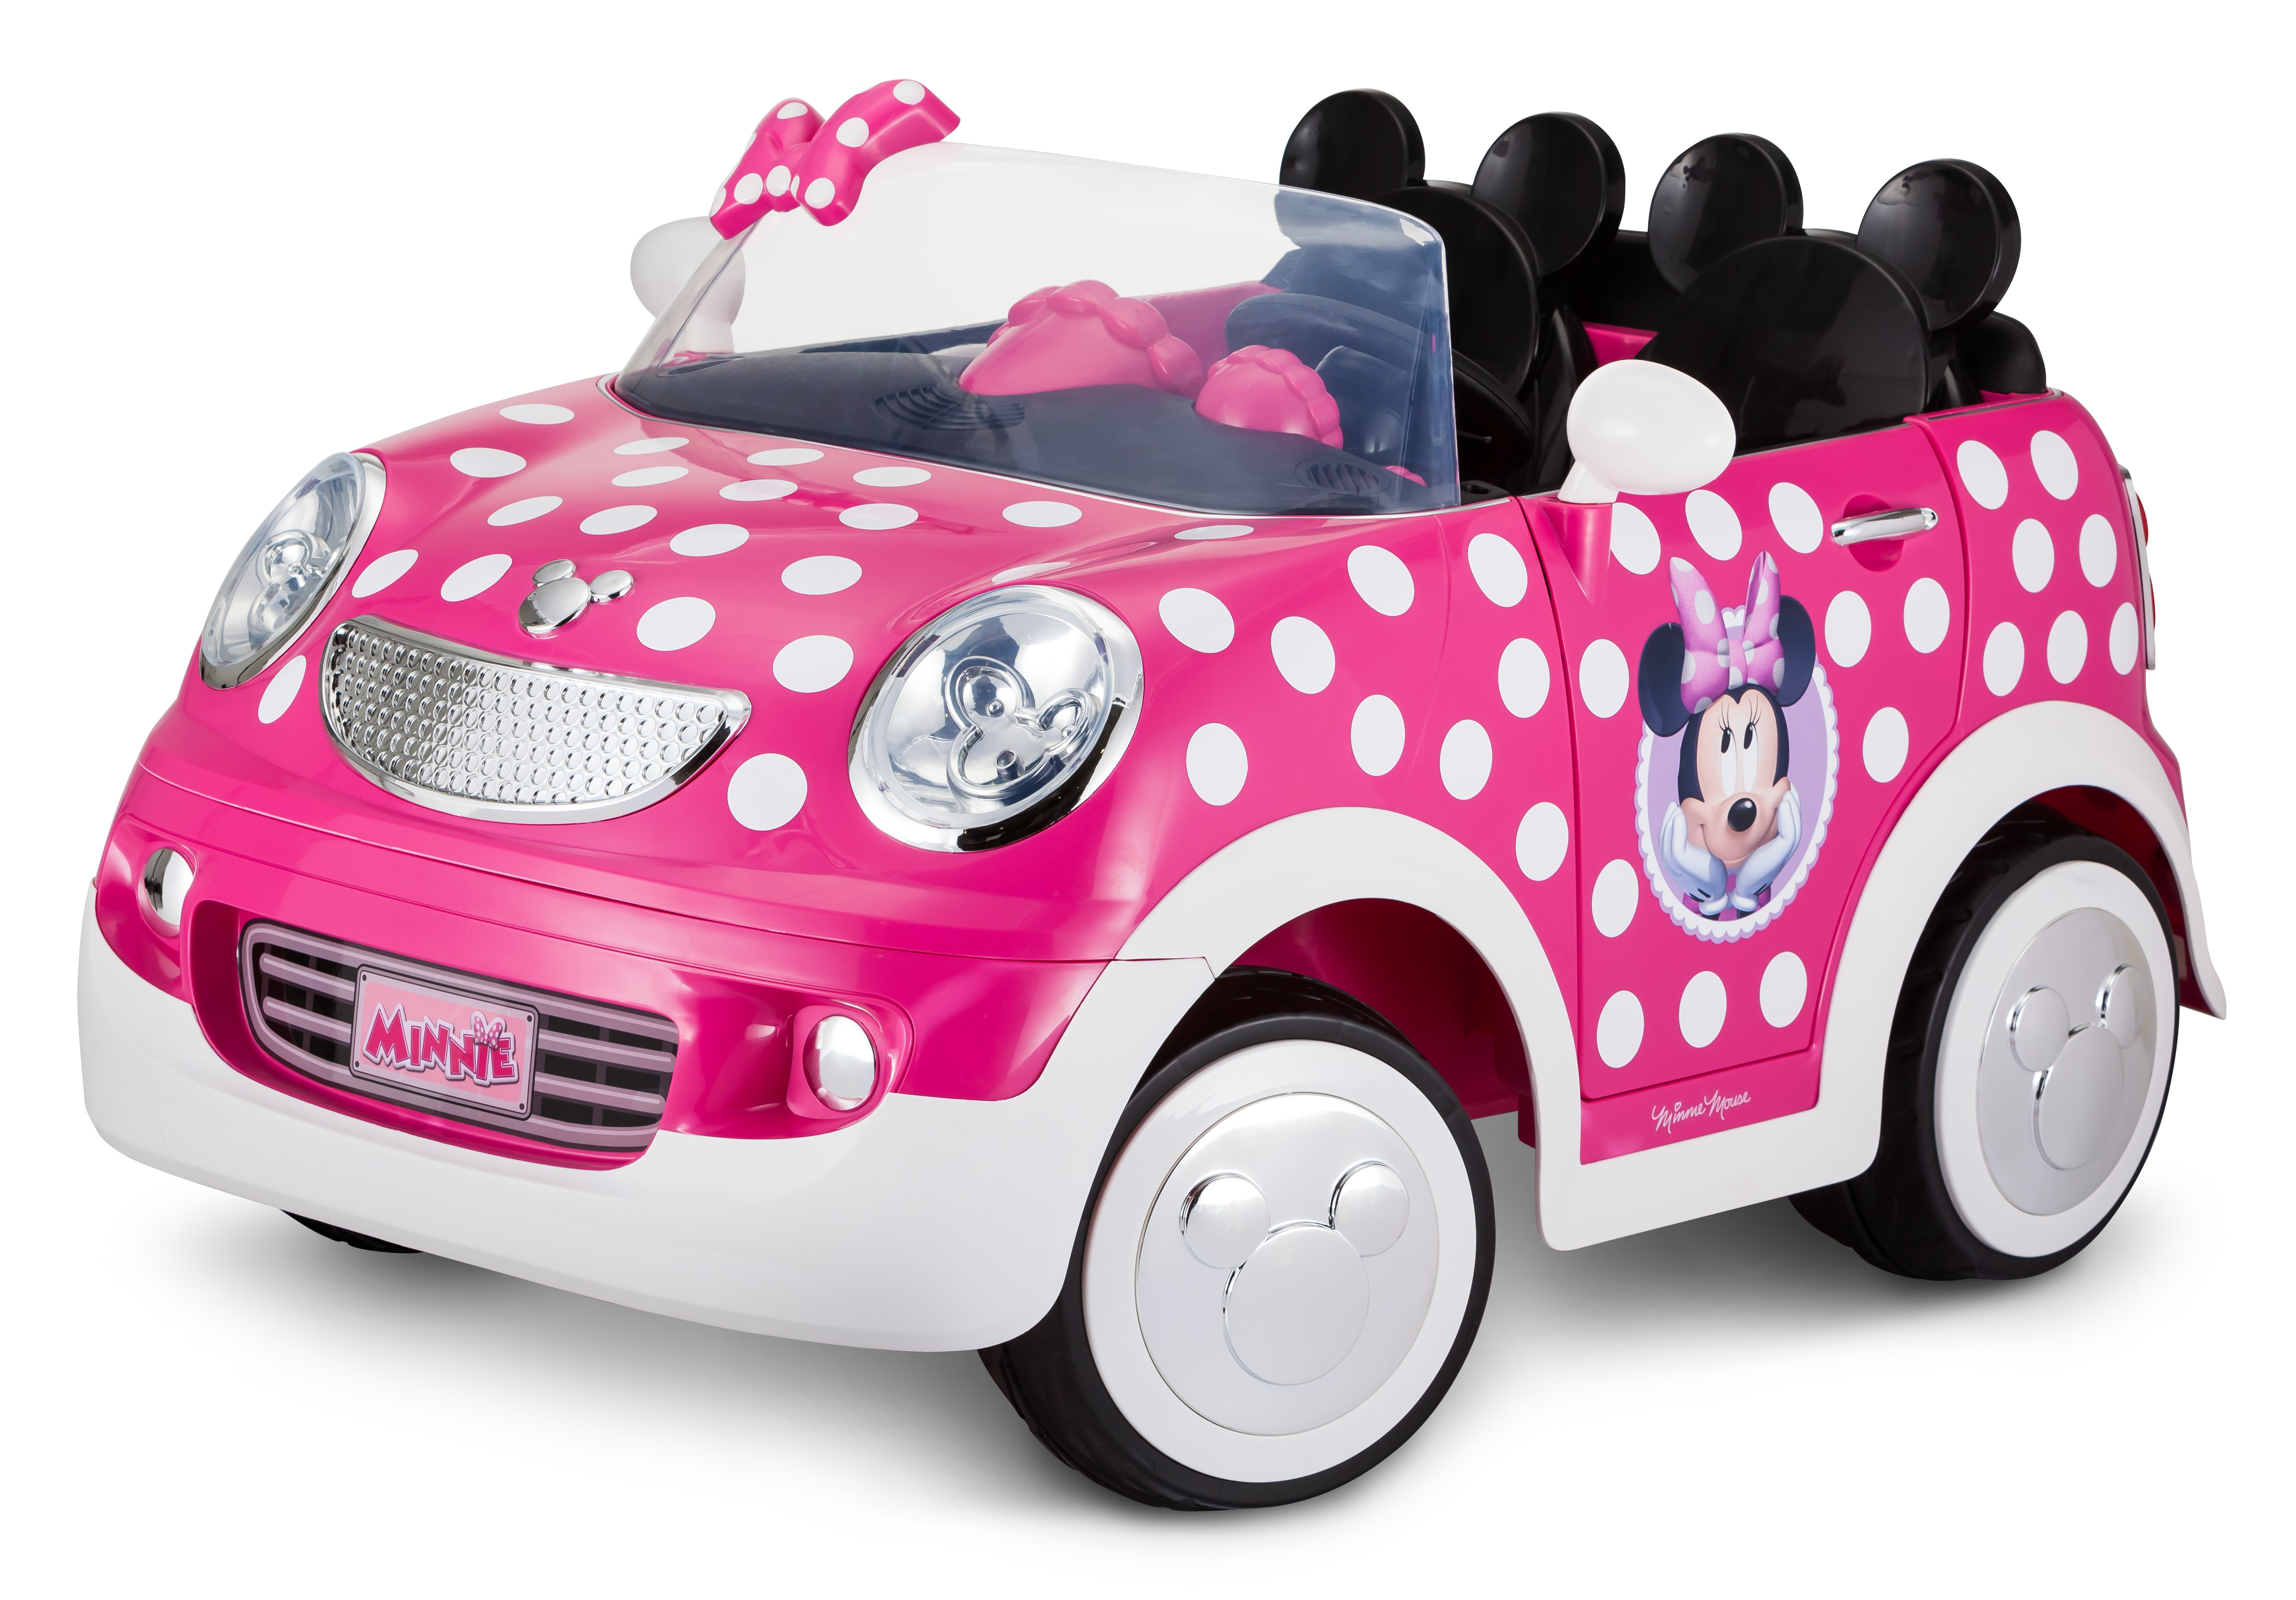 12-Volt Minnie Mouse Hot Rod Coupe Ride-On by Kid Trax, Pink White by Pacific Cycle